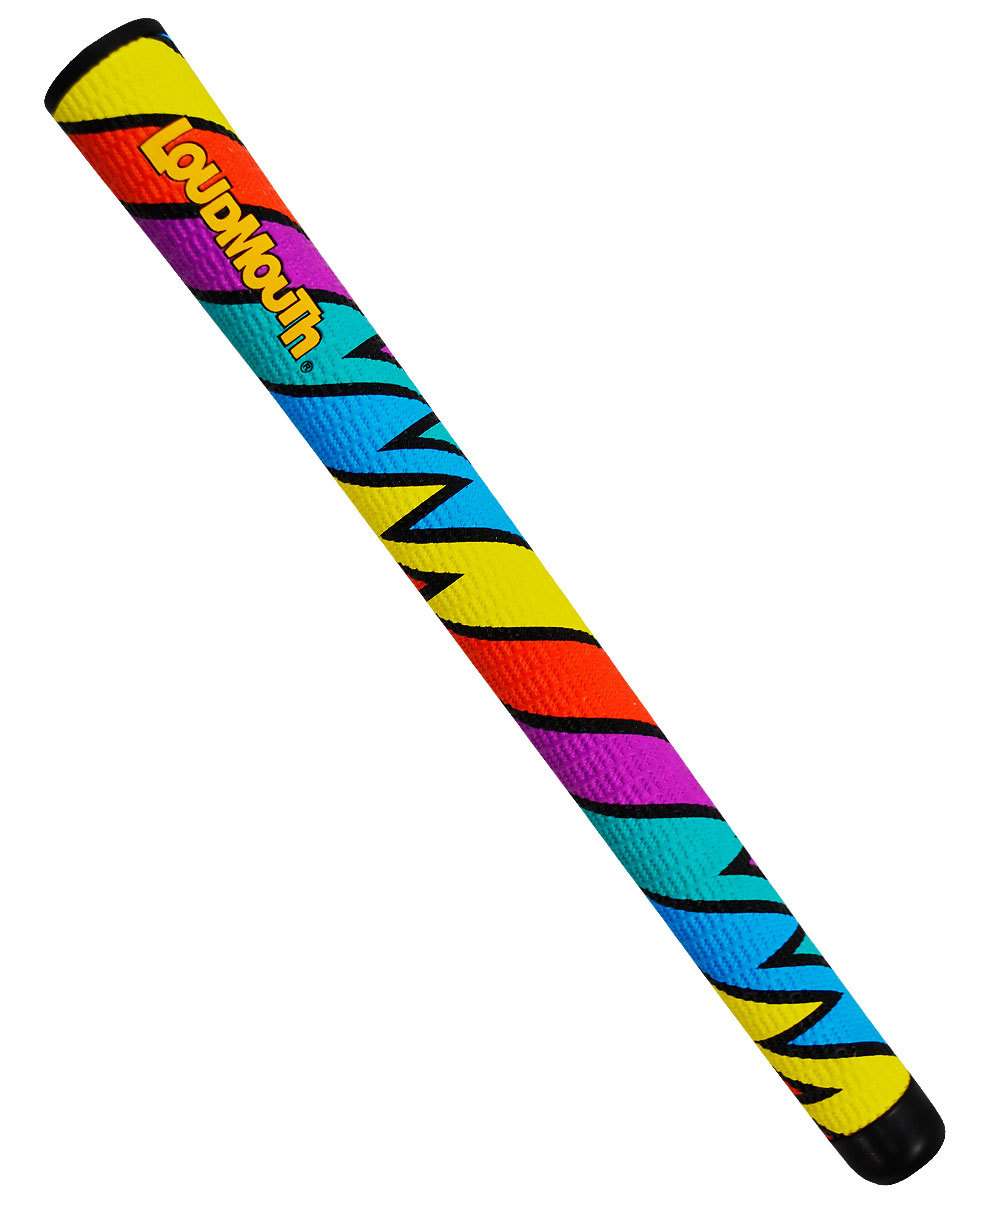 Swing Grips - Loudmouth Golf Gear